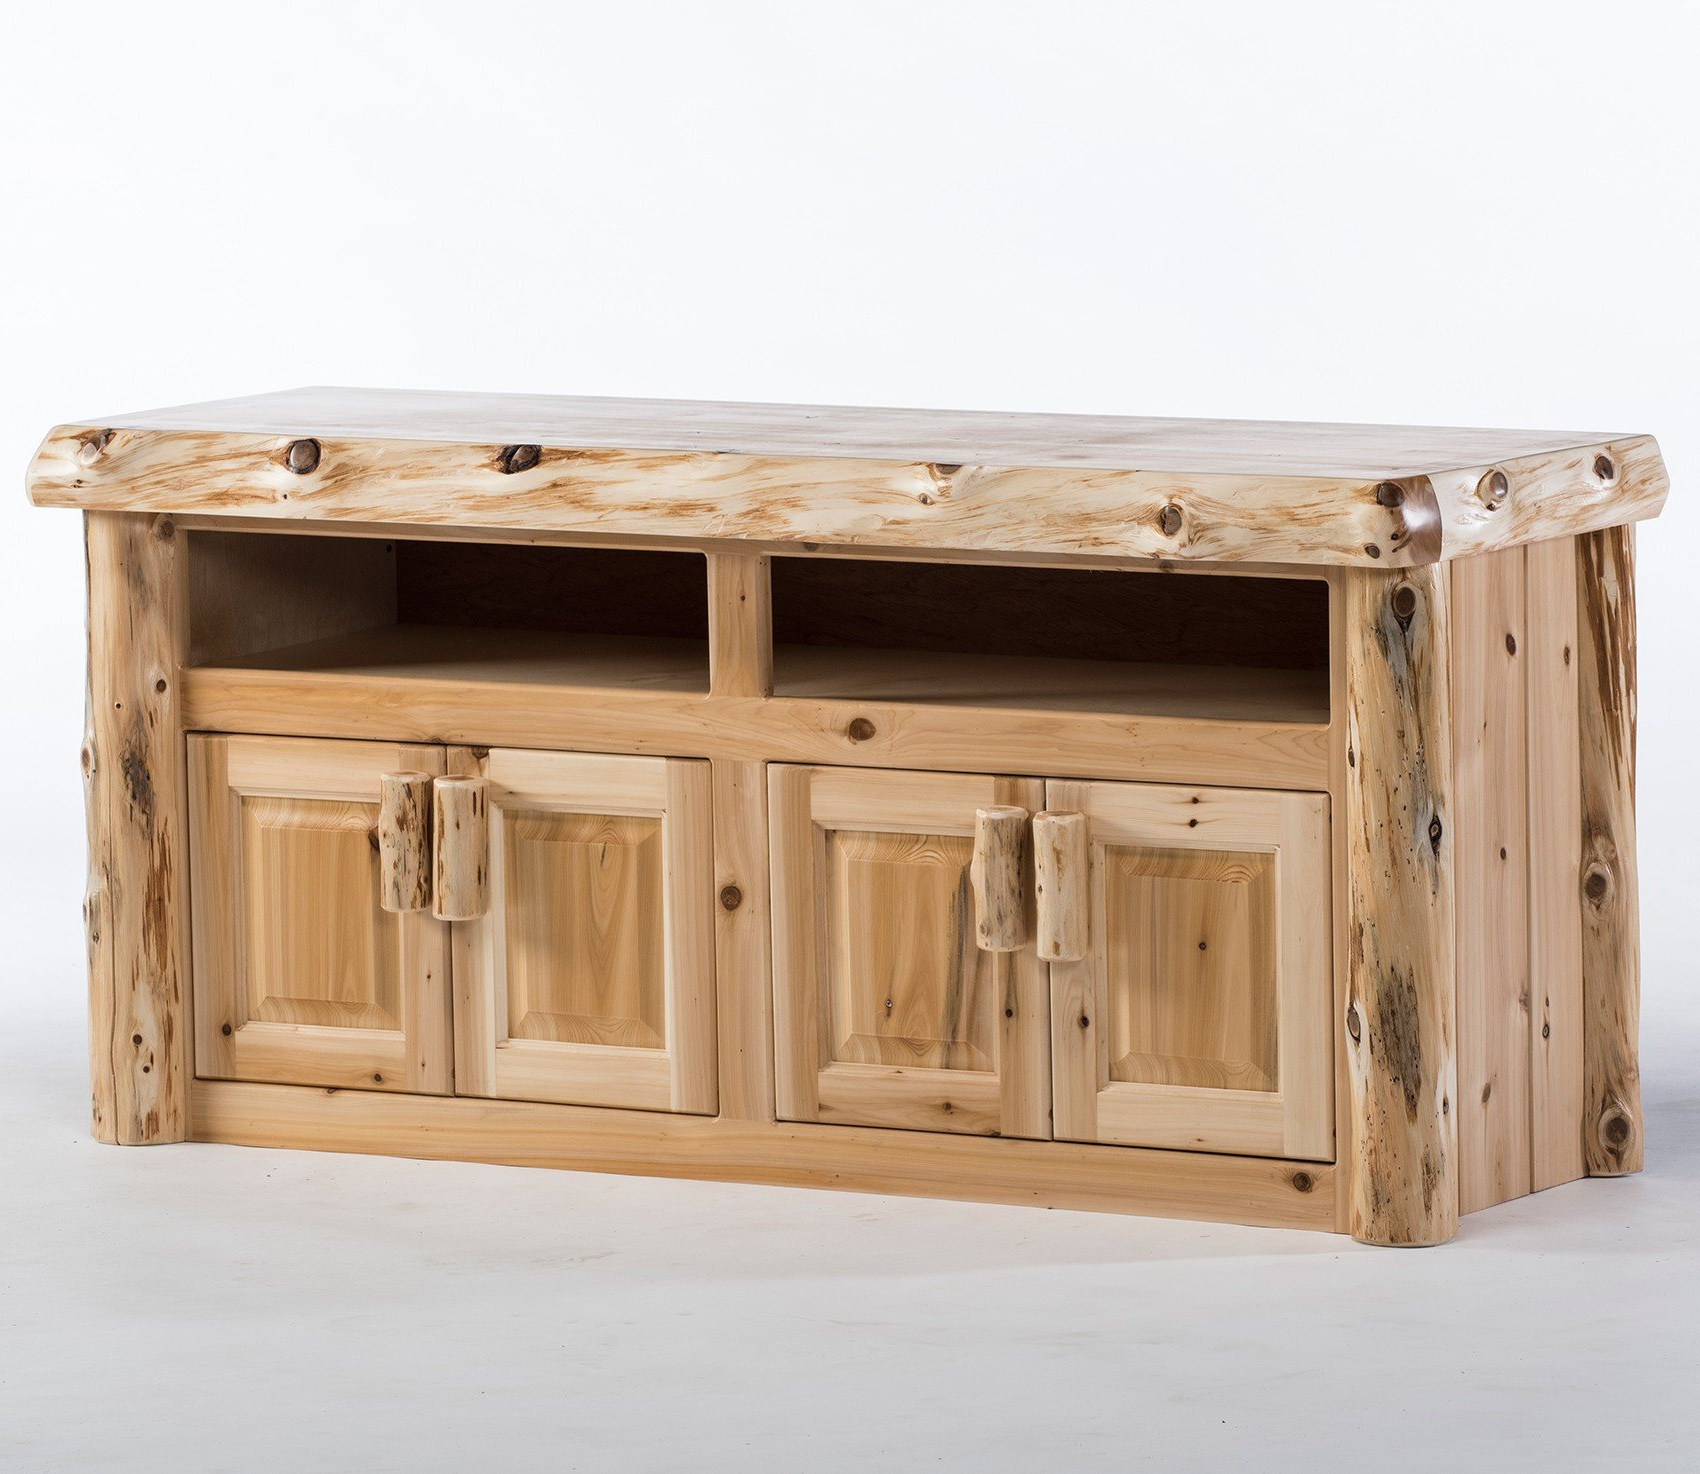 Well Known Reclaimed Wood Tv Stands & Rustic Tv Stands: Log Tv Stand & Rustic Inside Rustic Tv Cabinets (View 19 of 20)